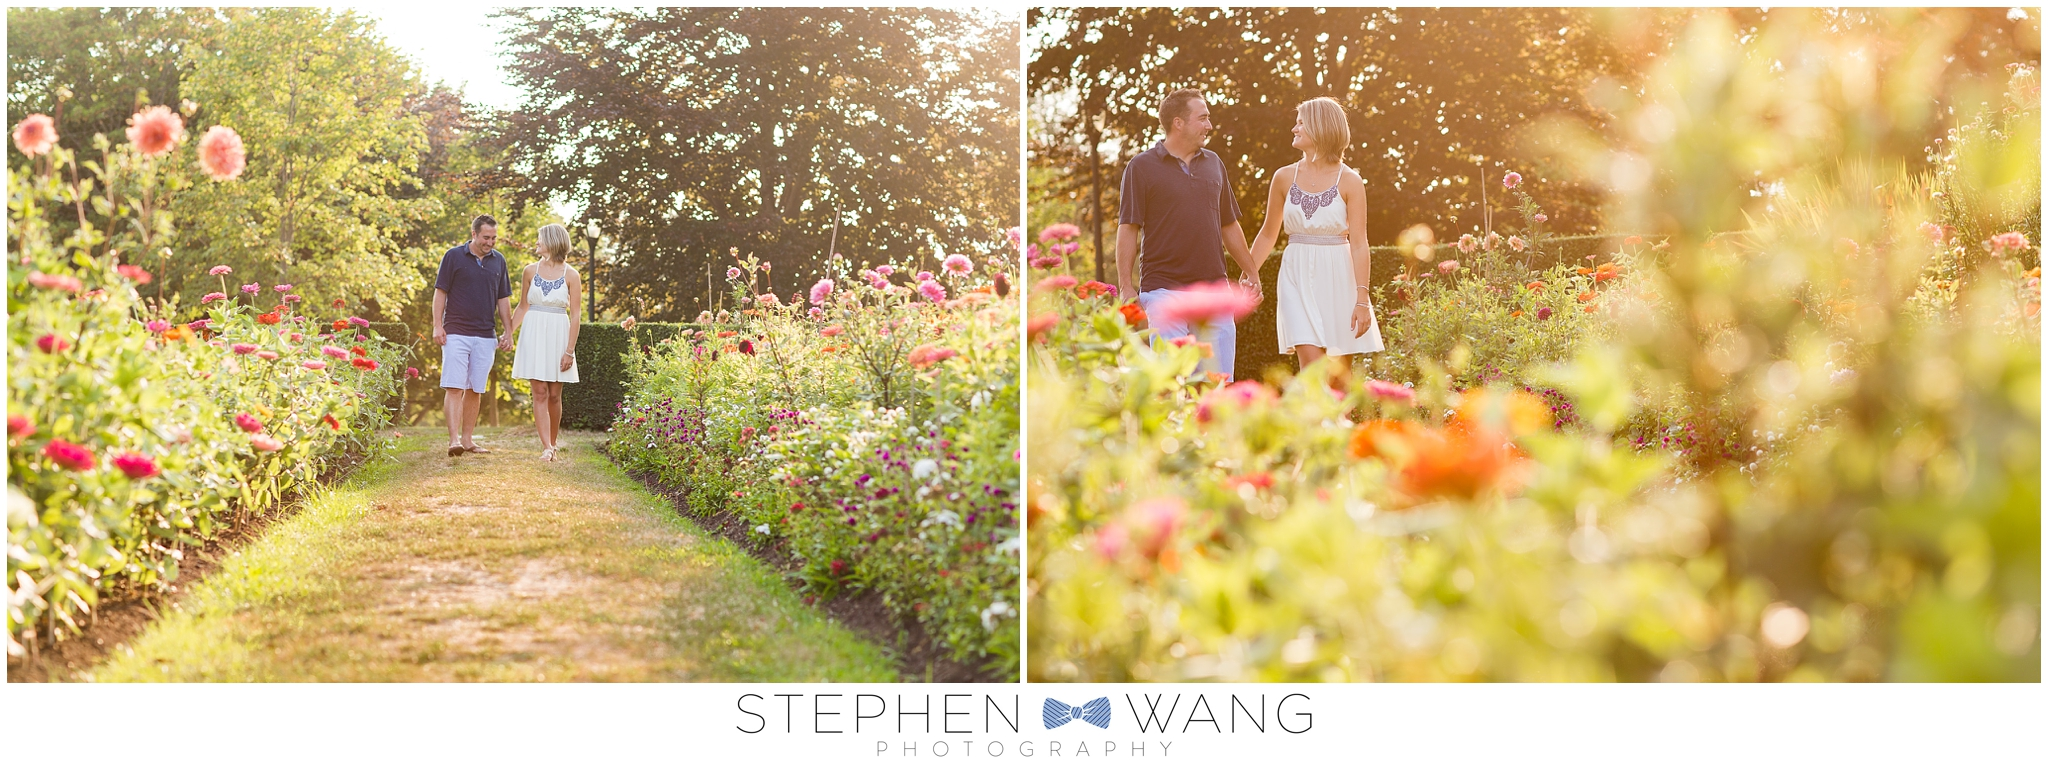 stephen wang photography connecticut wedding photographer harkness park engagement session ct shoreline eolia mansion _0002.jpg